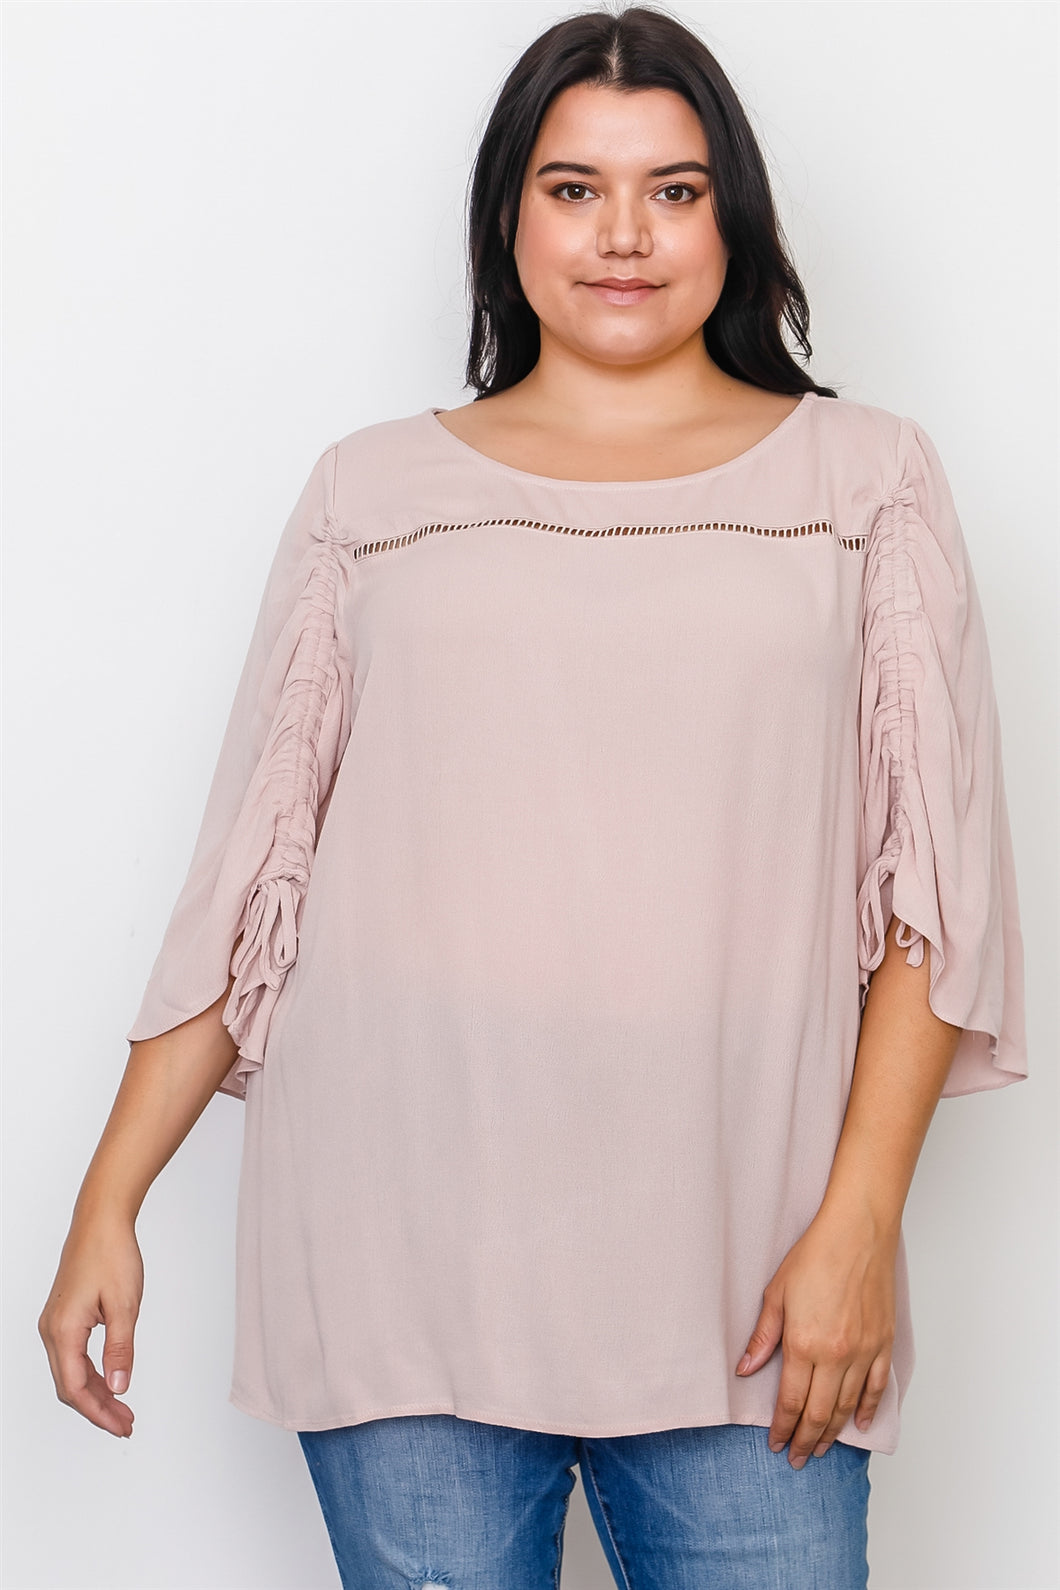 Plus Size Drawstring Sleeve Top Pretty little thing-Don Dapper Store